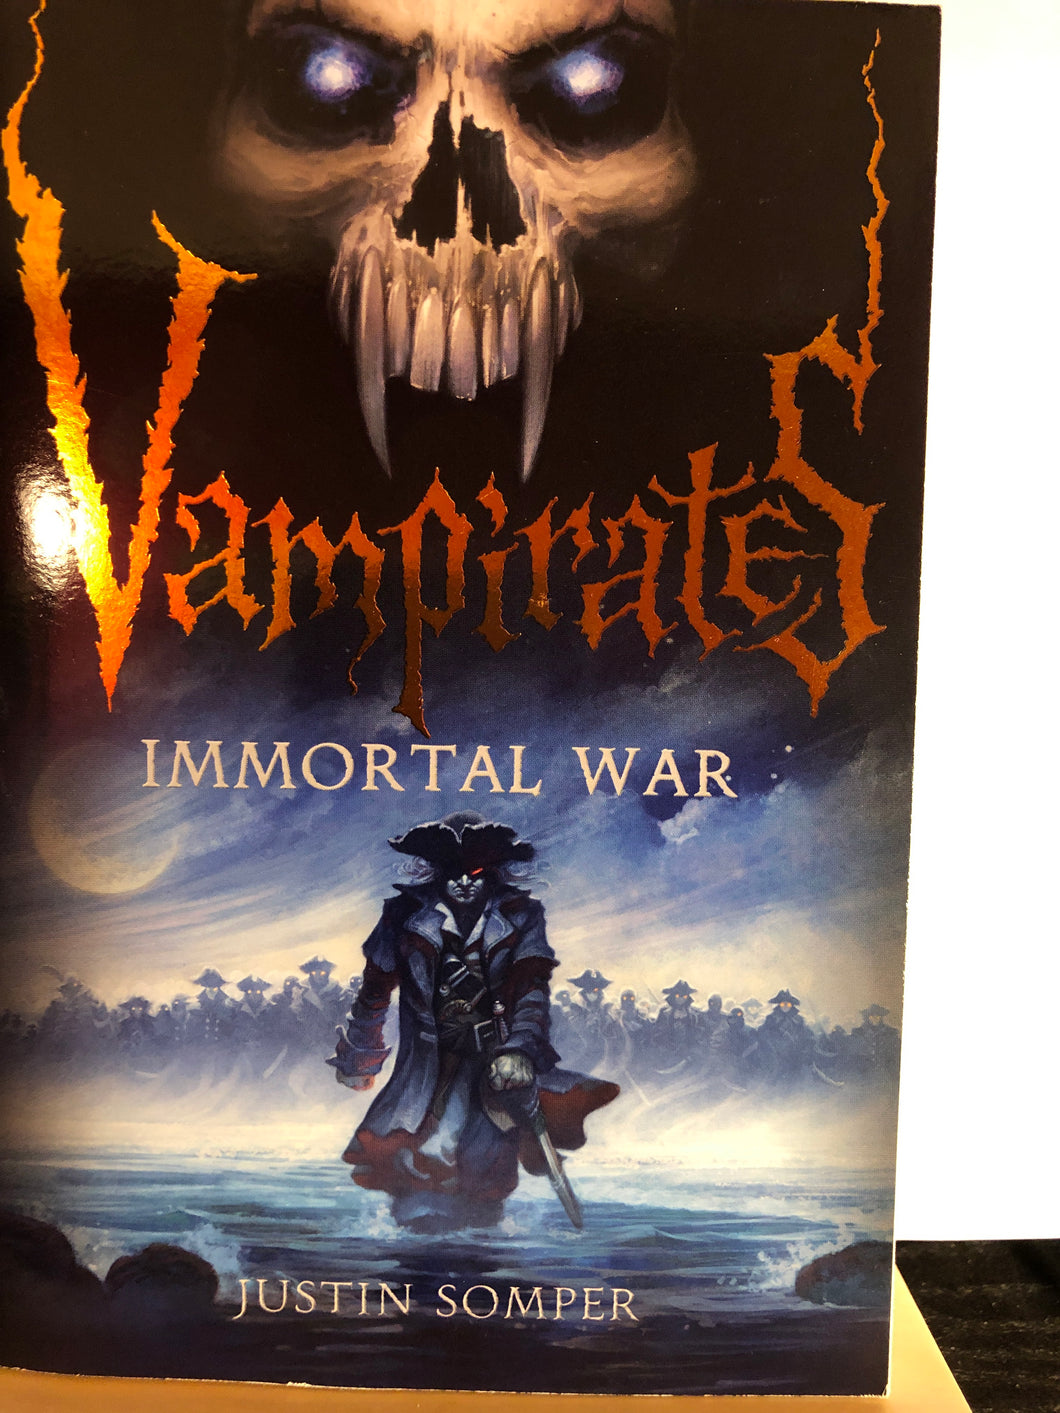 Immortal War  by Justin Somper  (Vampirates #6)